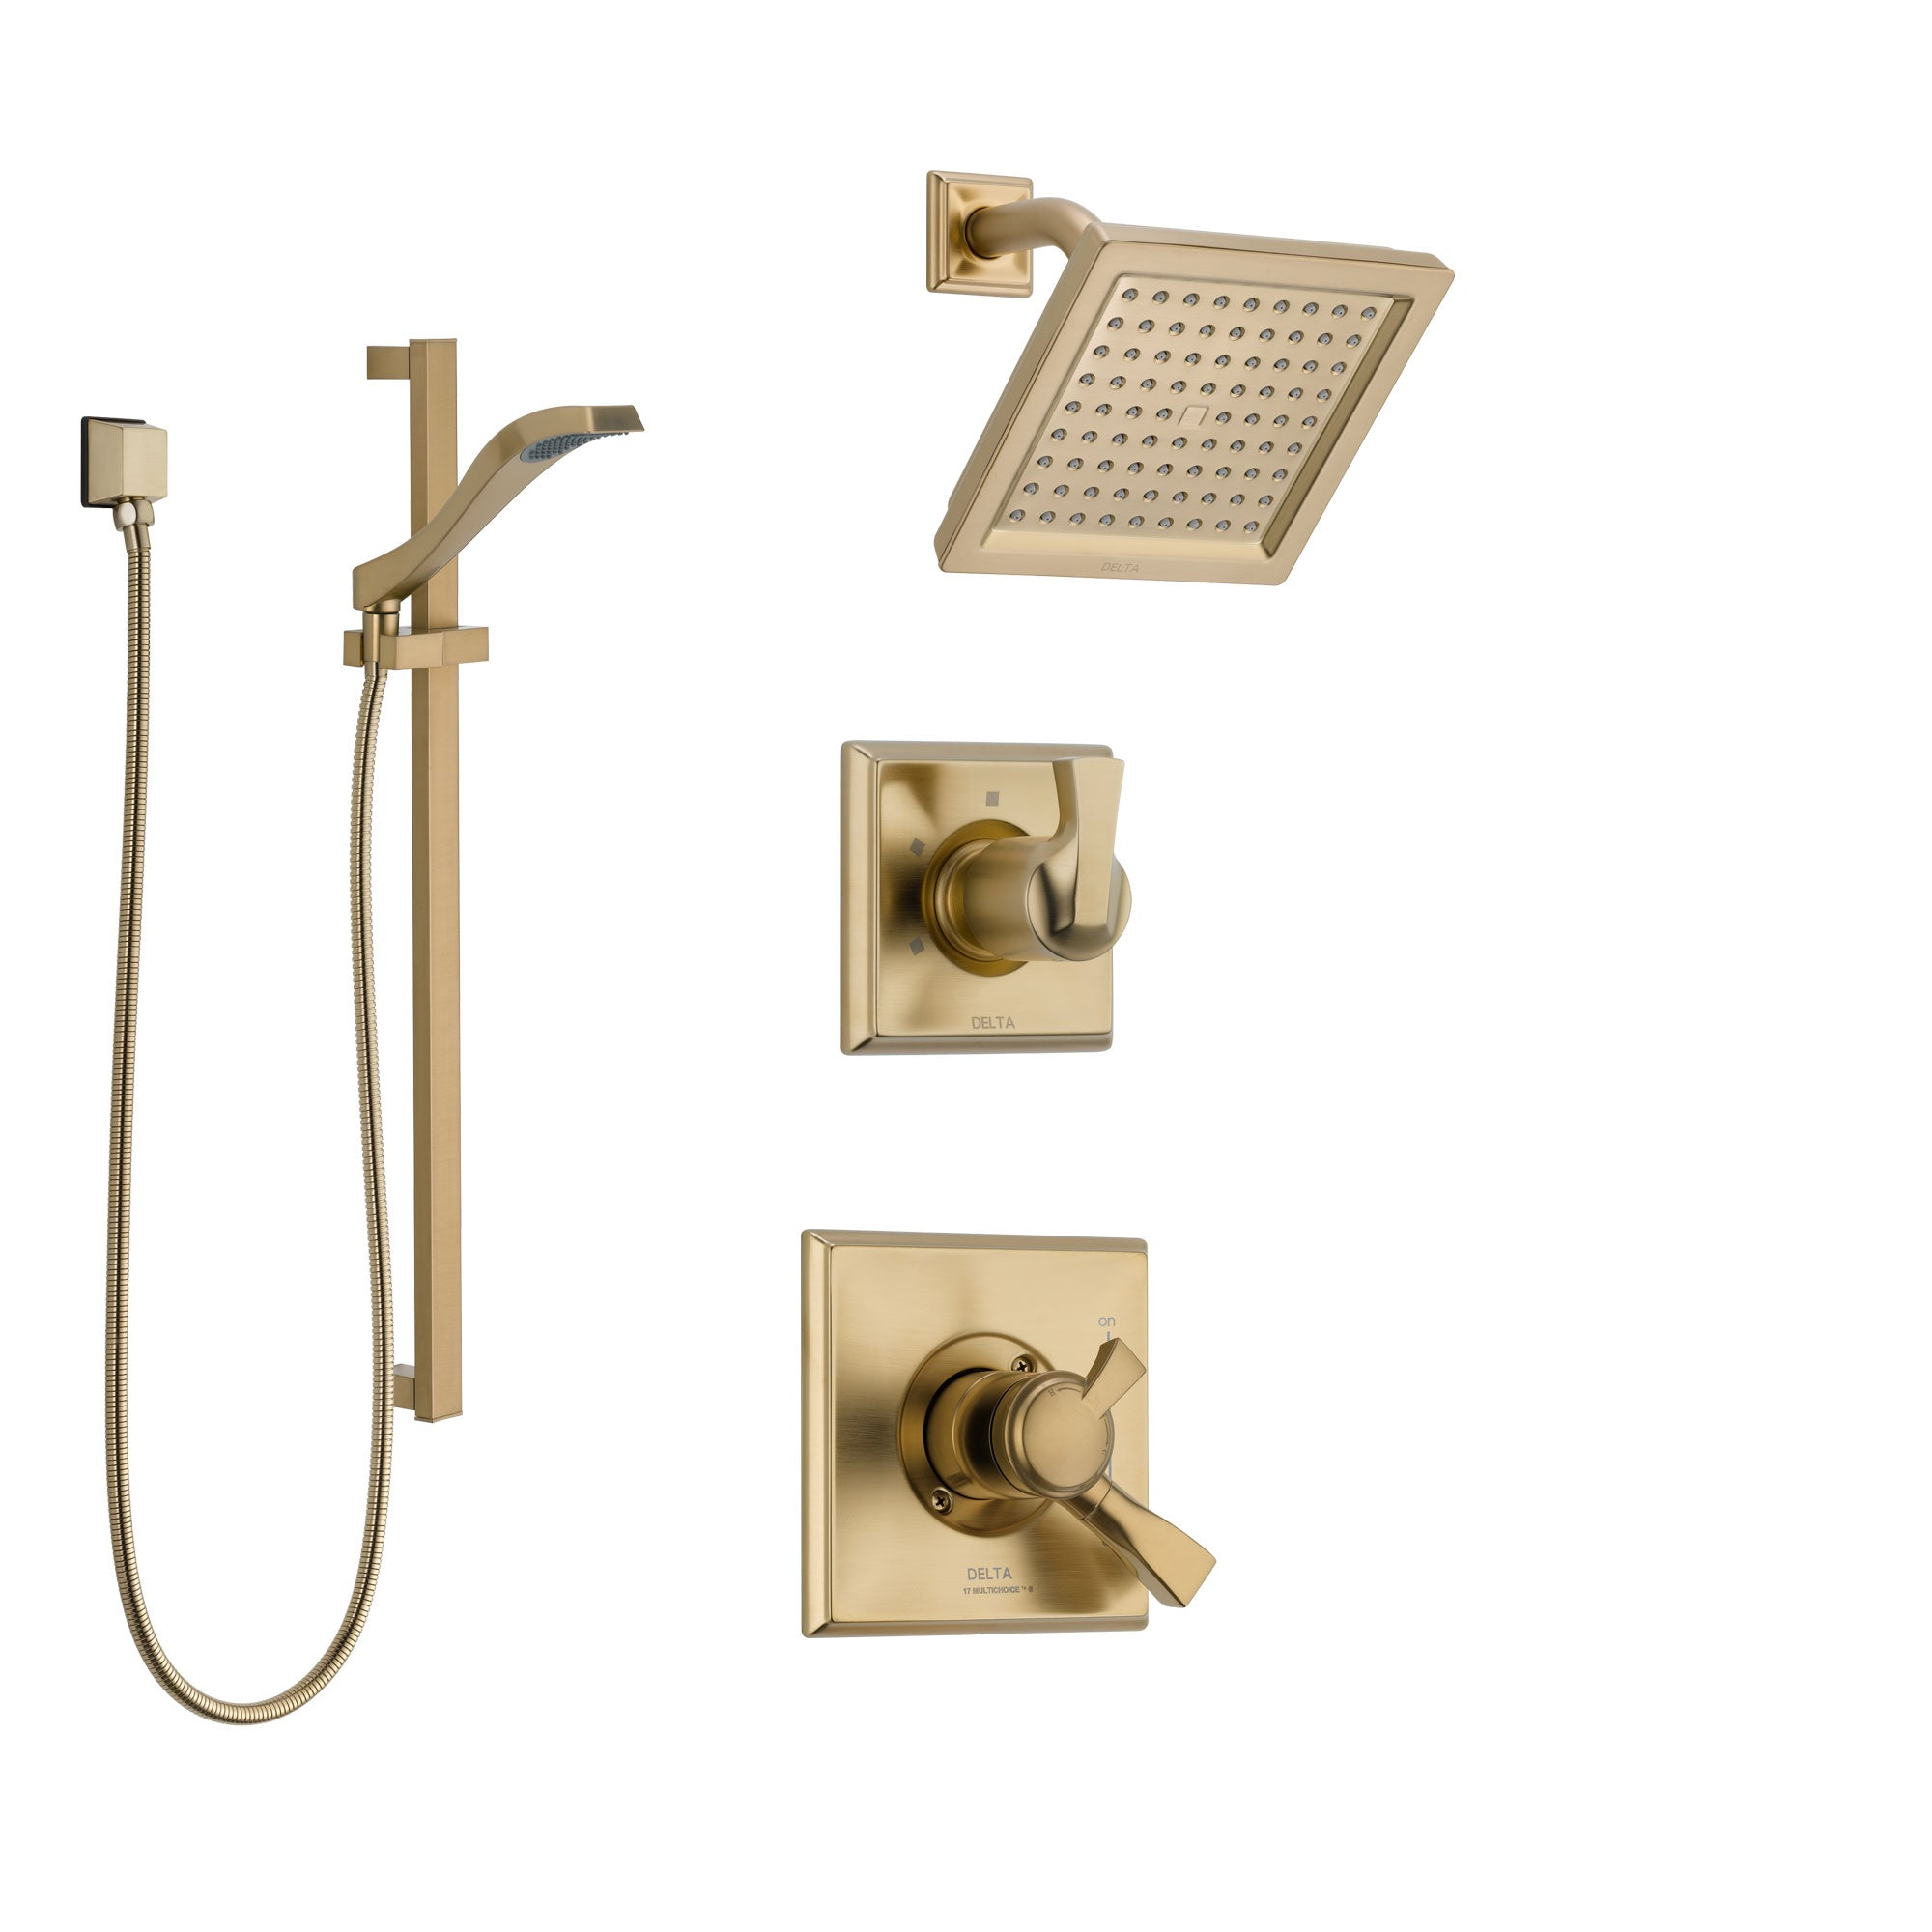 Delta Dryden Champagne Bronze Finish Shower System with Dual Control Handle, 3-Setting Diverter, Showerhead, and Hand Shower with Slidebar SS17251CZ2